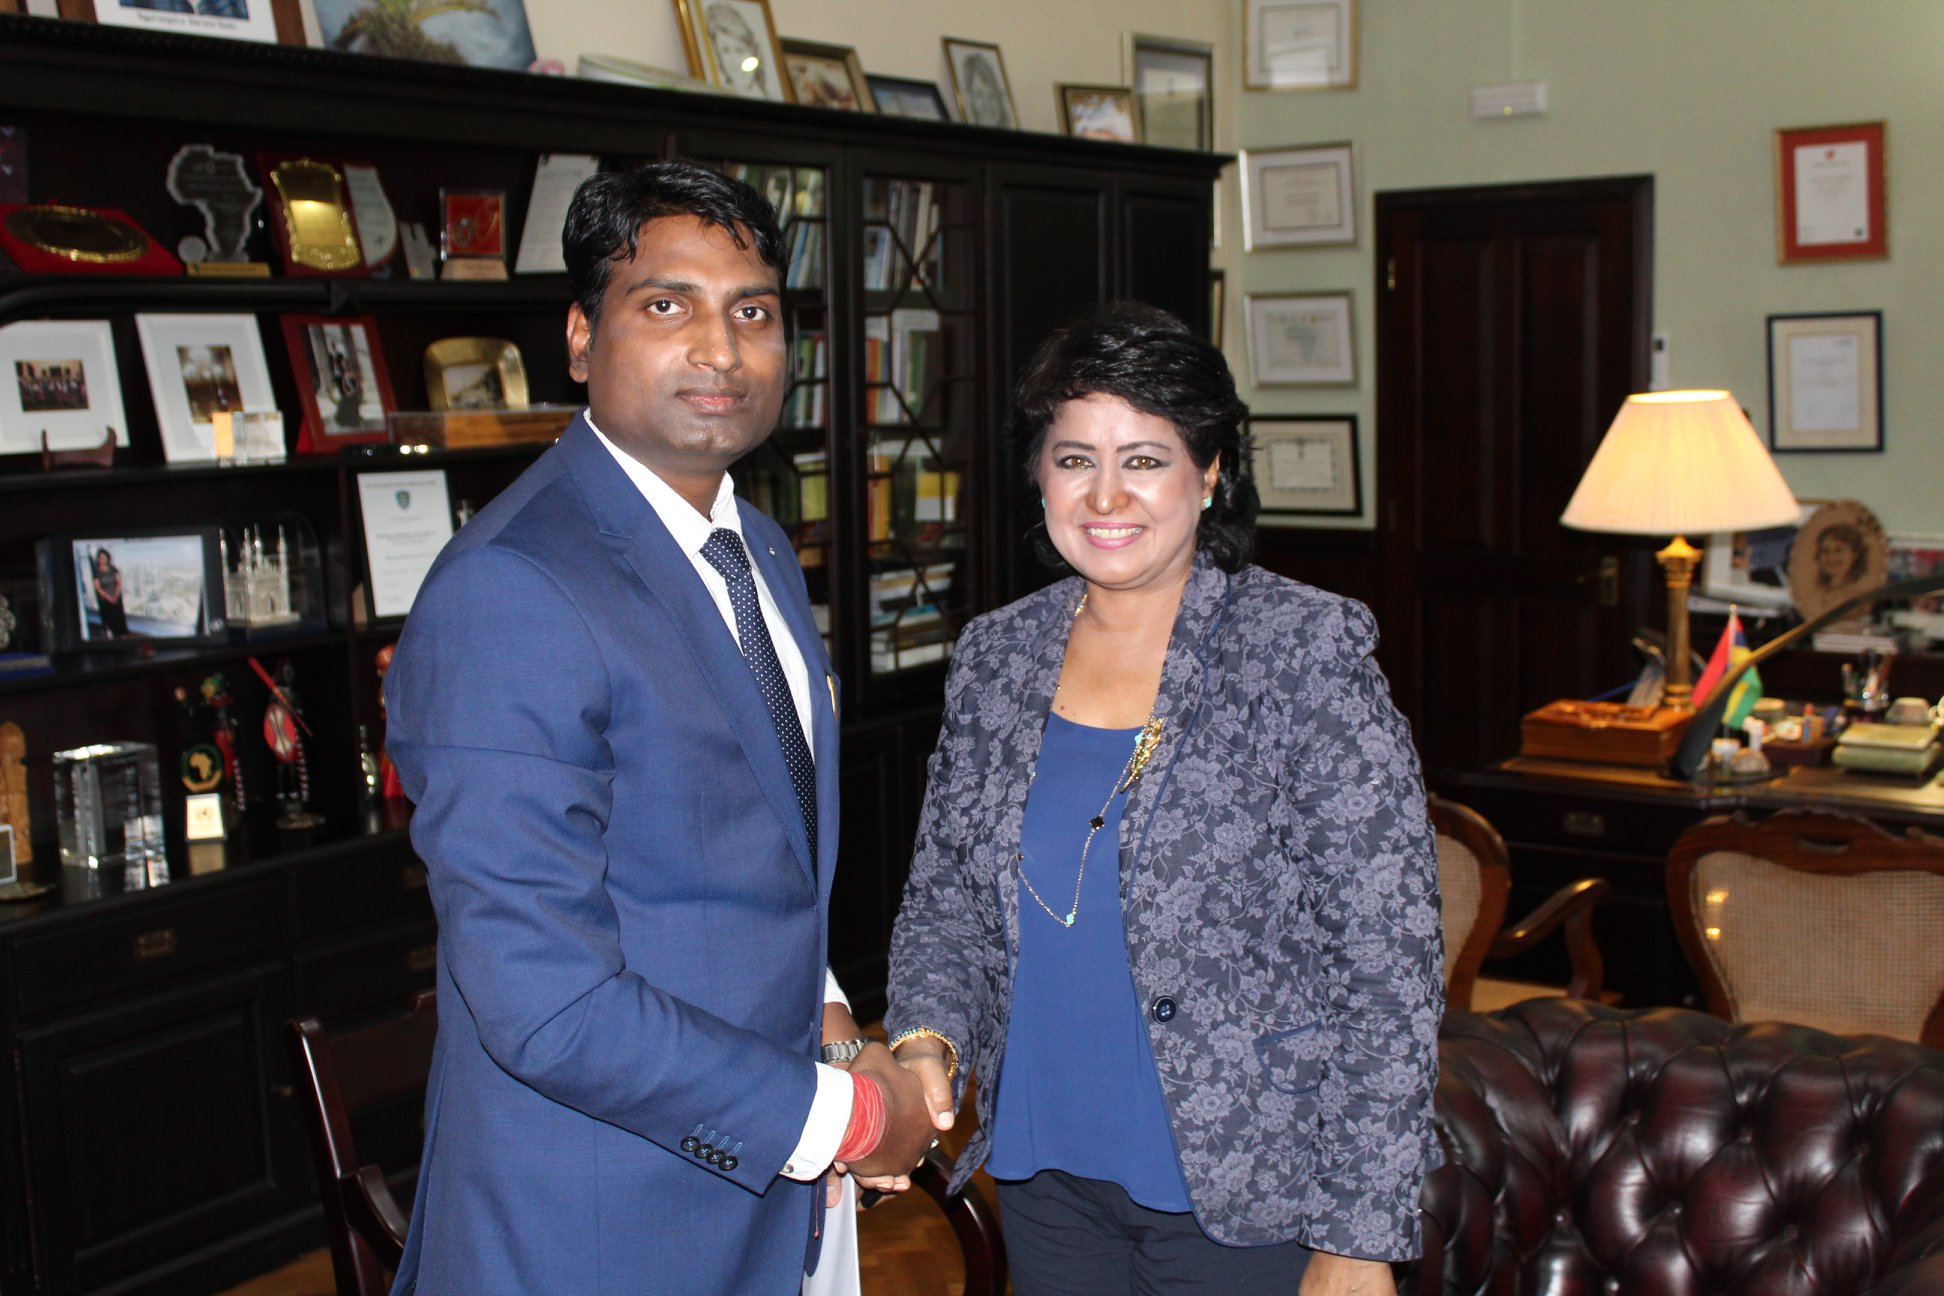 CEO & Publisher of Diplomacy & Beyond Plus with the Hon. President of the Republic of Mauritius, H.E. Ameenah Gurib-Fakim